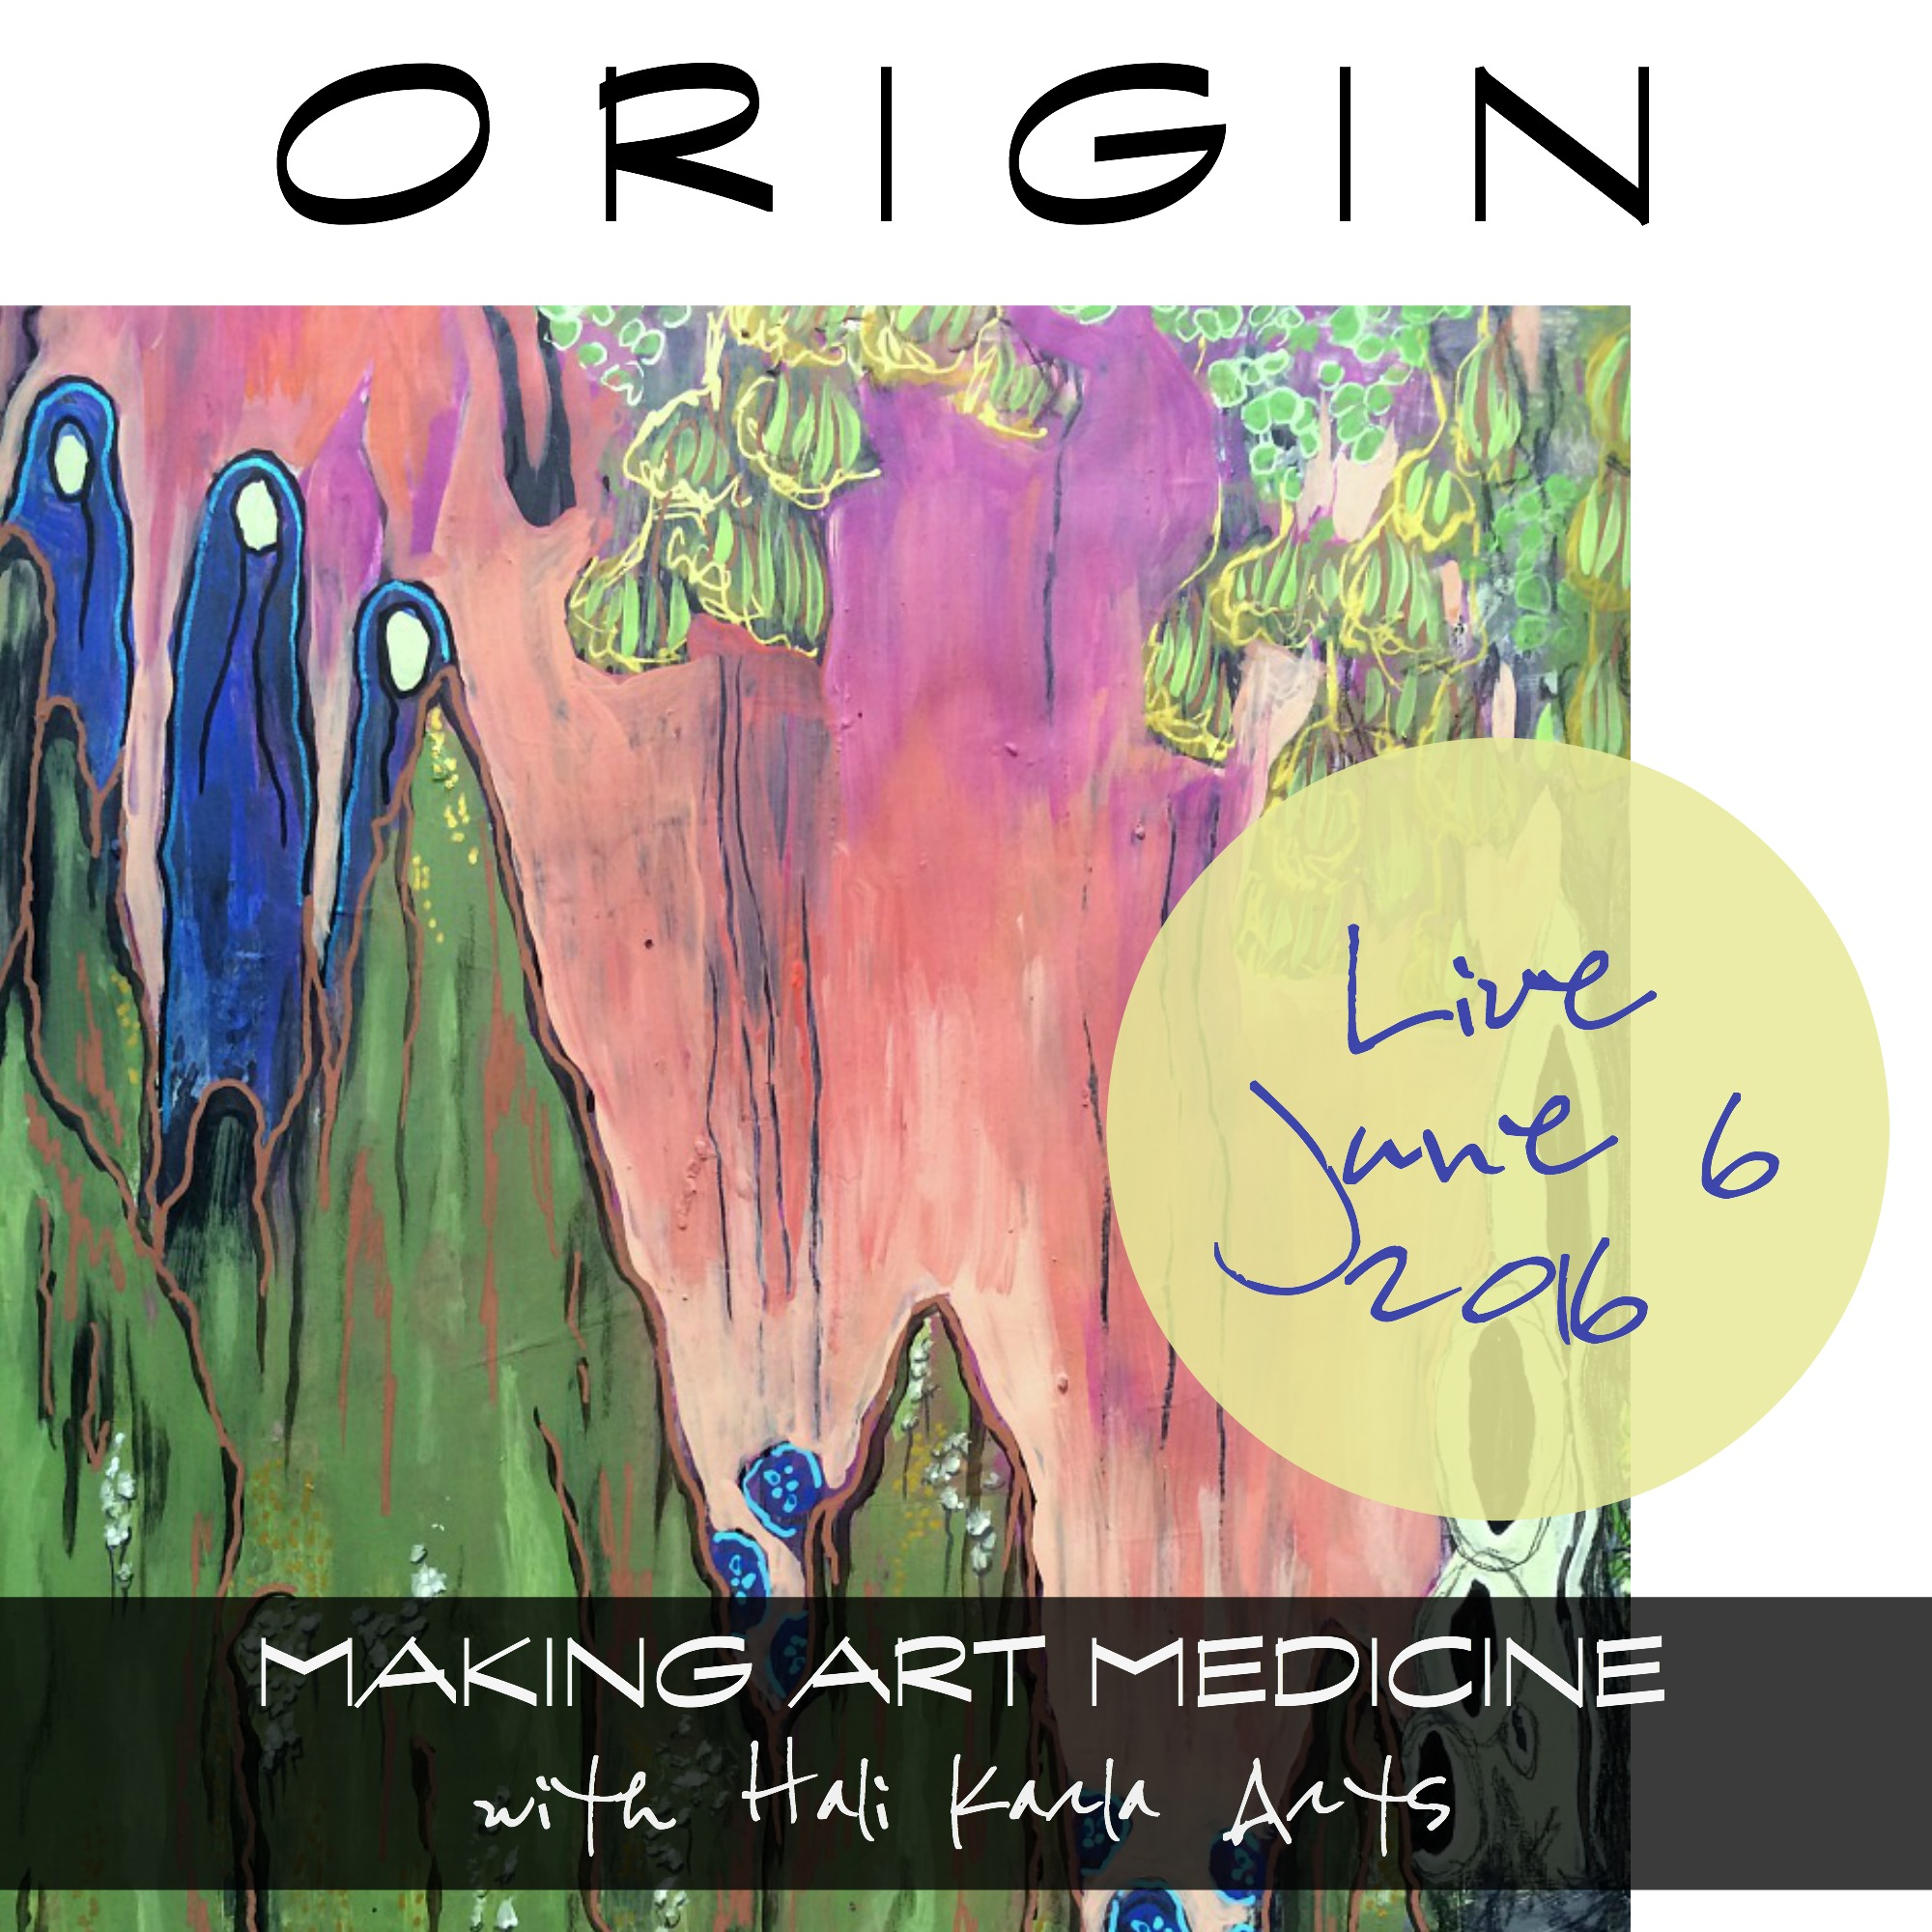 Origin - a self-paced contemplative art class about connecting with your landscape and dreamscapes begins June 6 - with Hali Karla Arts